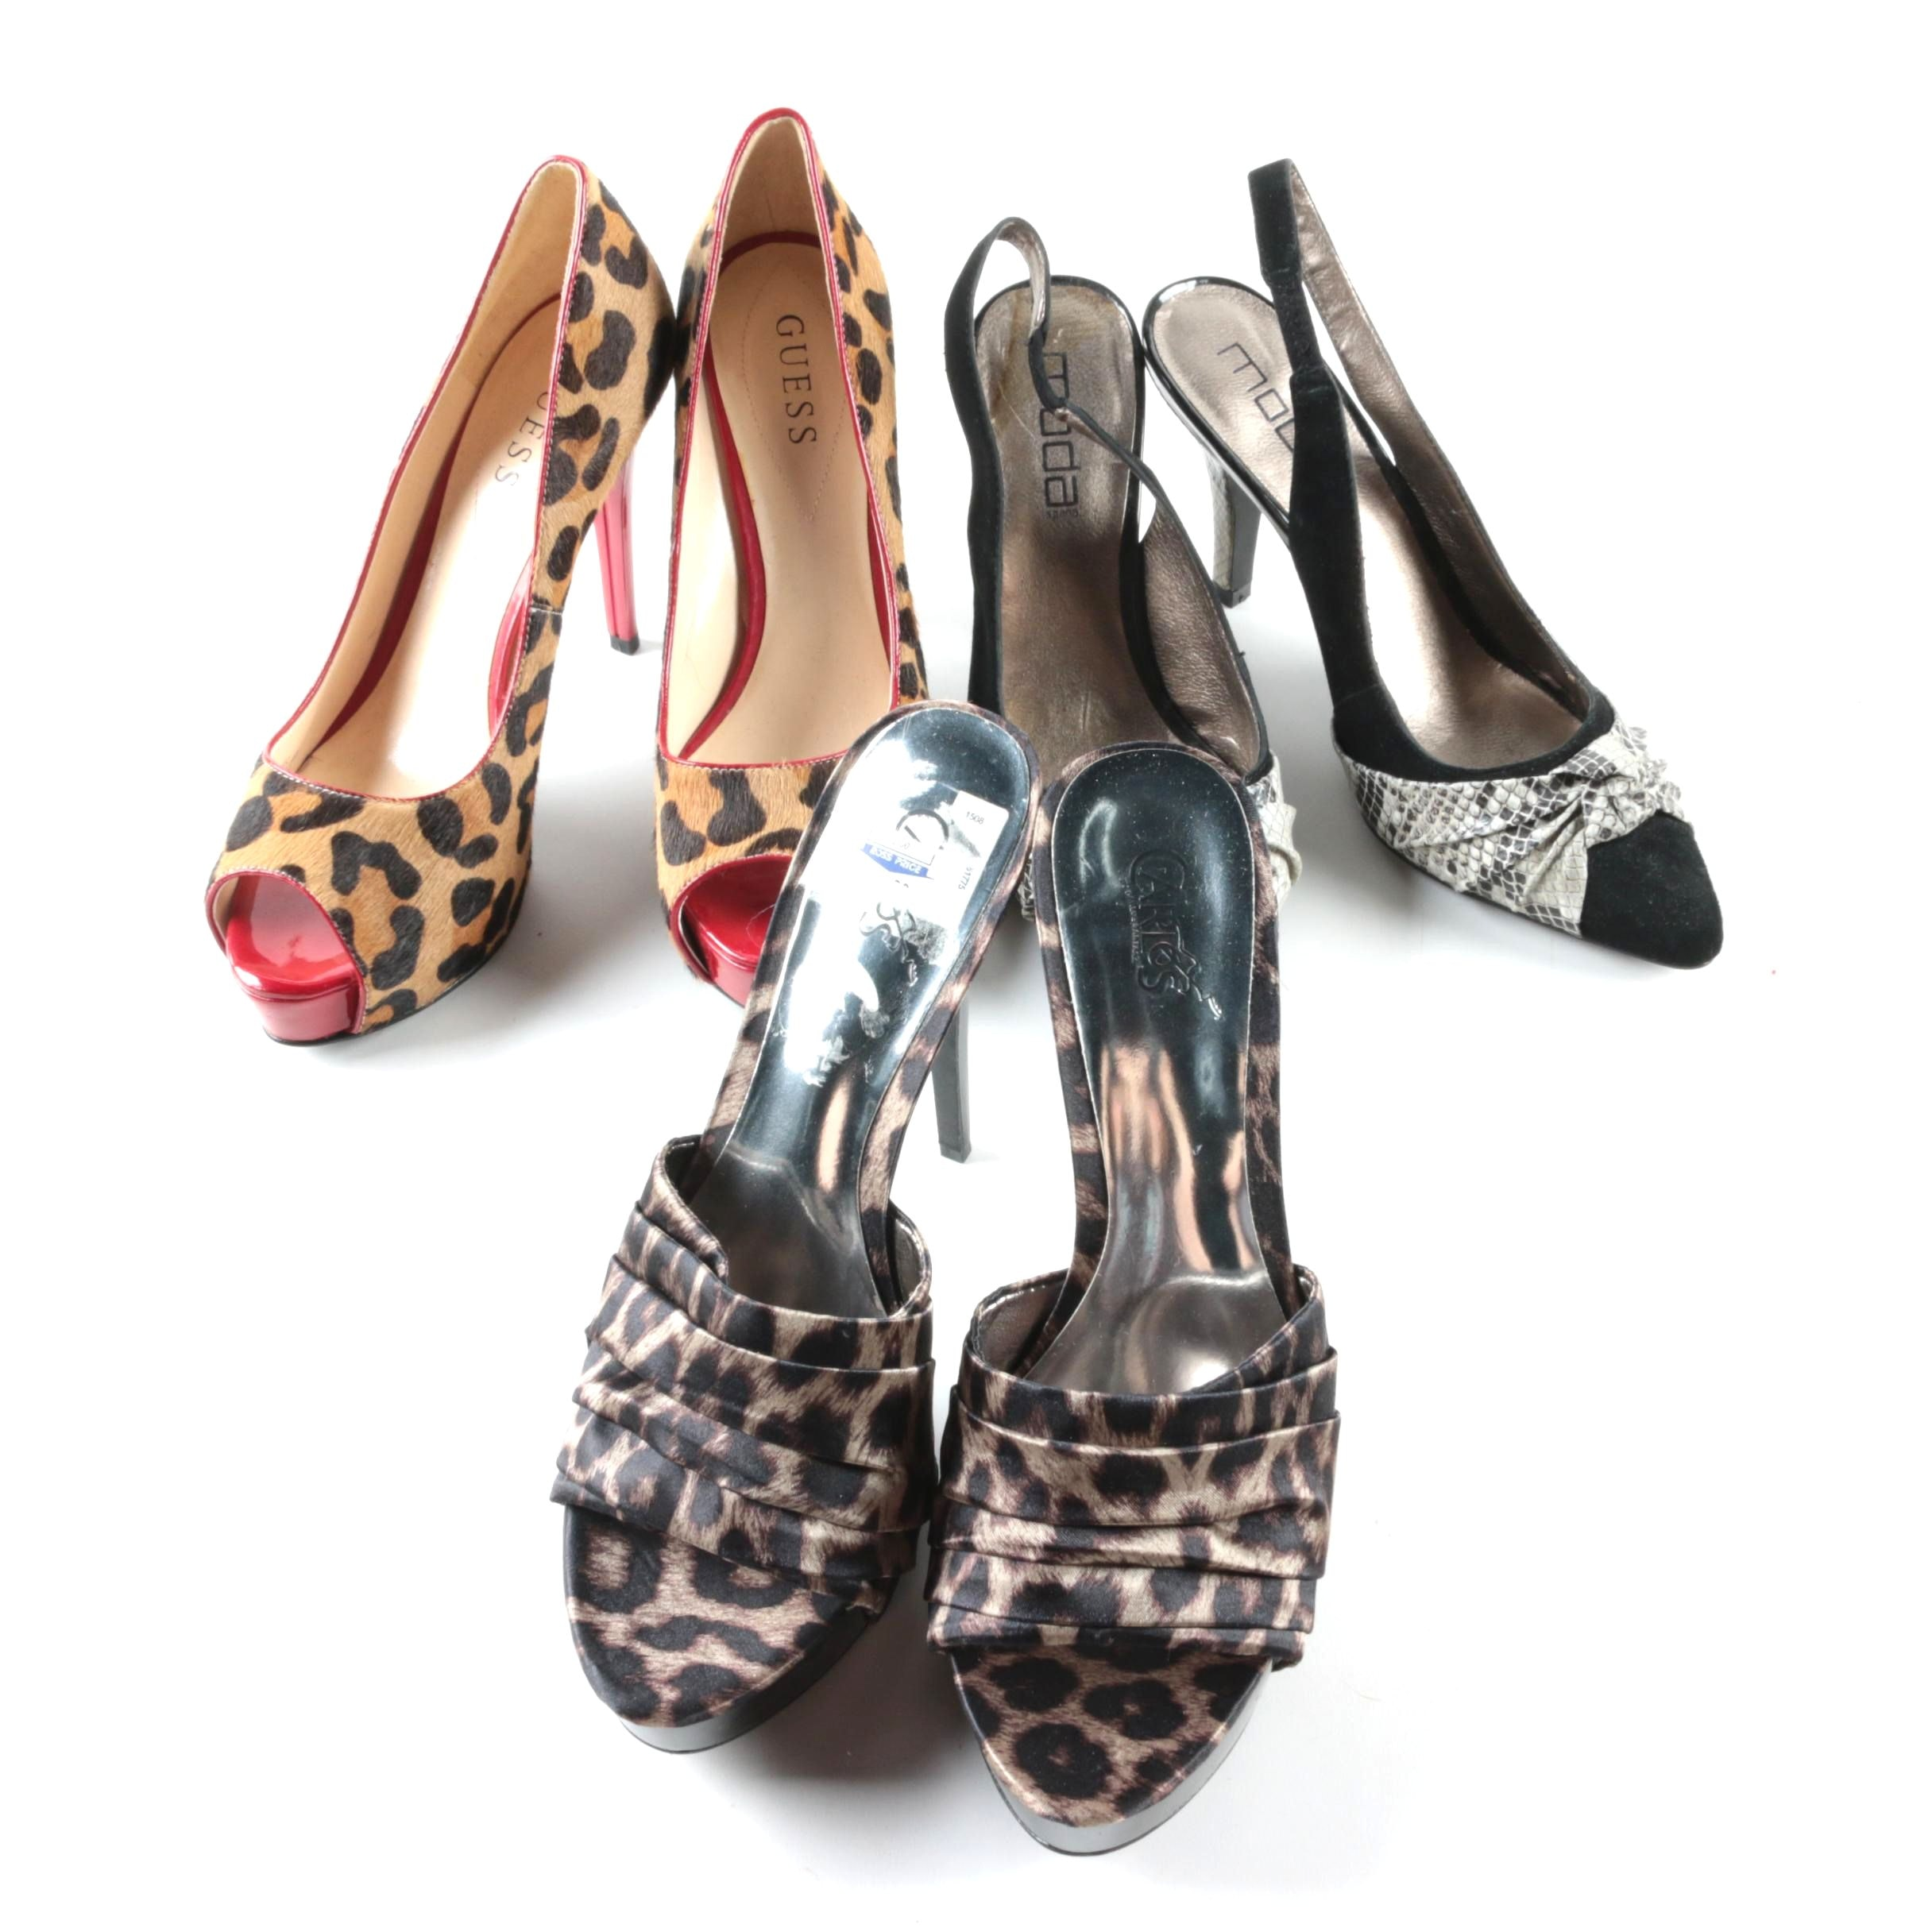 Leopard and Snakeskin Patterned High Heels, Including GUESS